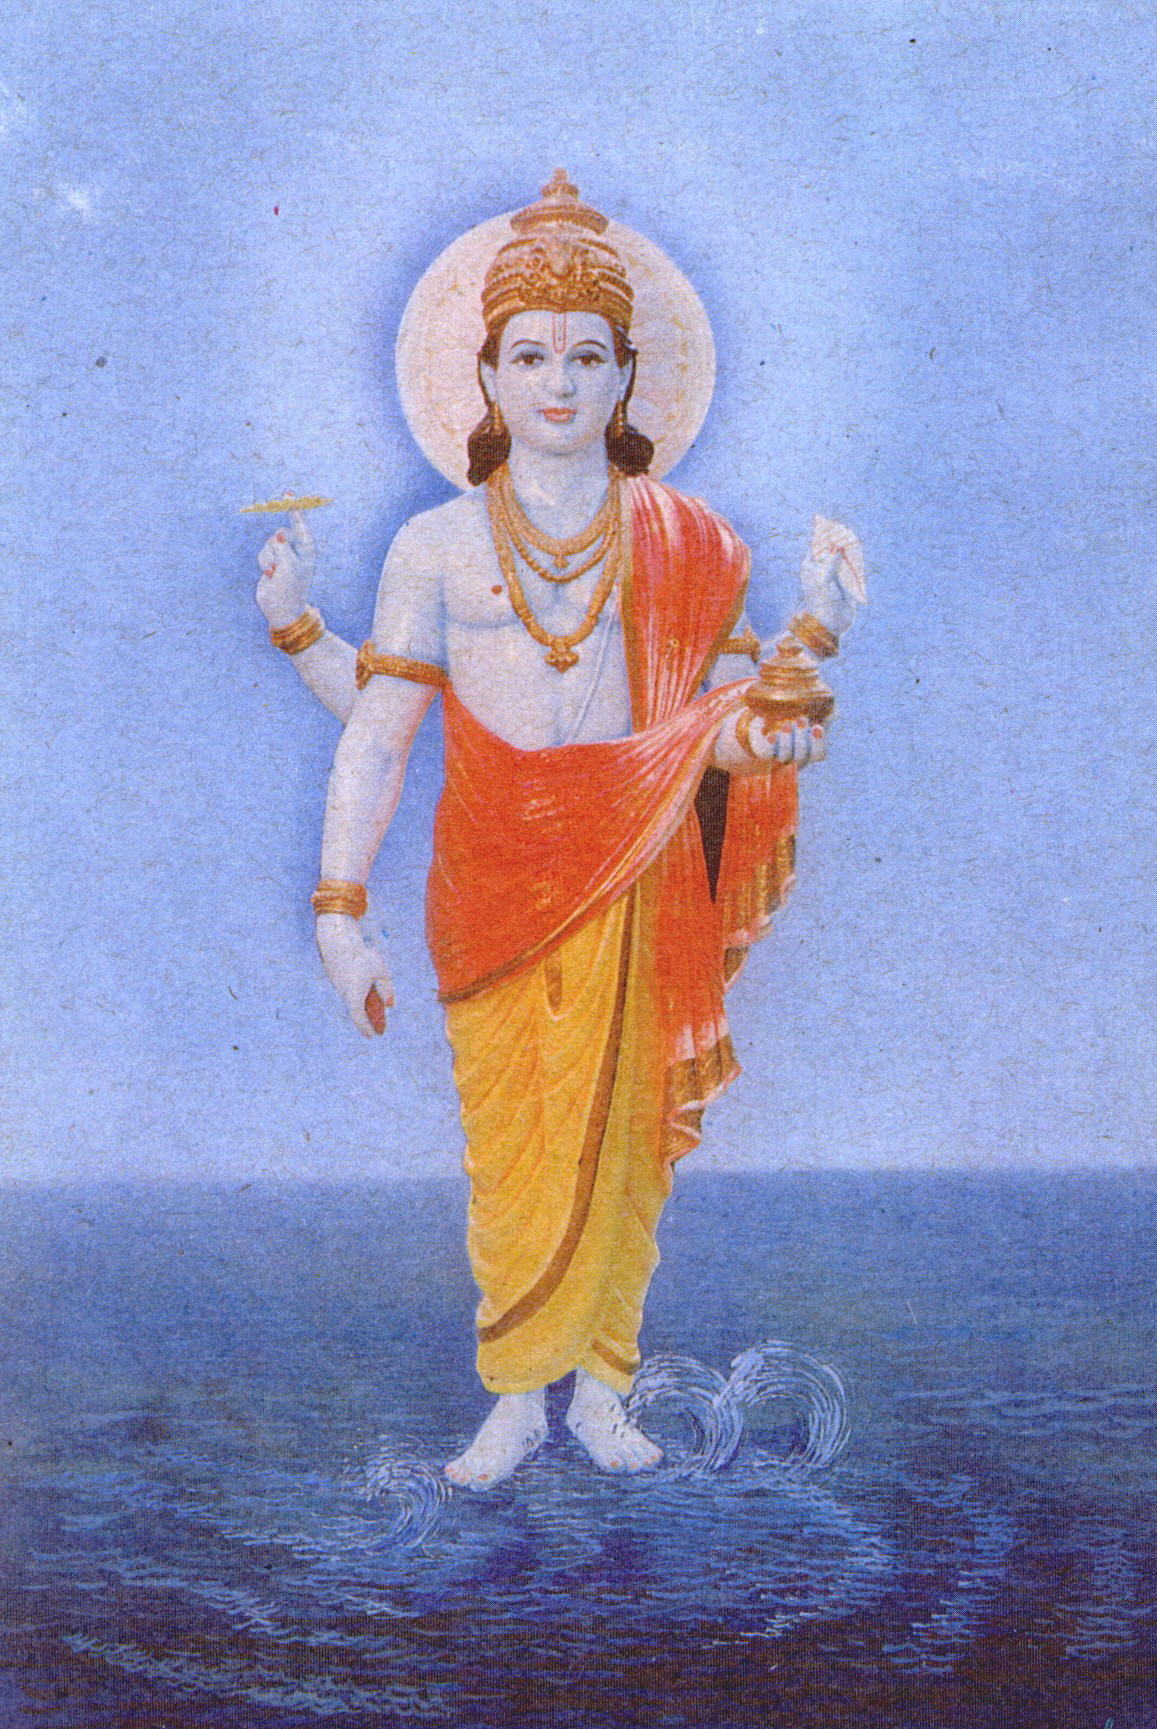 Lord Dhanvantari, who is considered the original sage or deity of Ayurveda, through whose grace and guidance the science can be learned. Traditionally in his four hands are: a leech, a vessel of immortality gaining nectar, a conch shell, and a sphere of energy. Here the fourth hand contains an unknown item, perhaps the famous haritaki fruit.